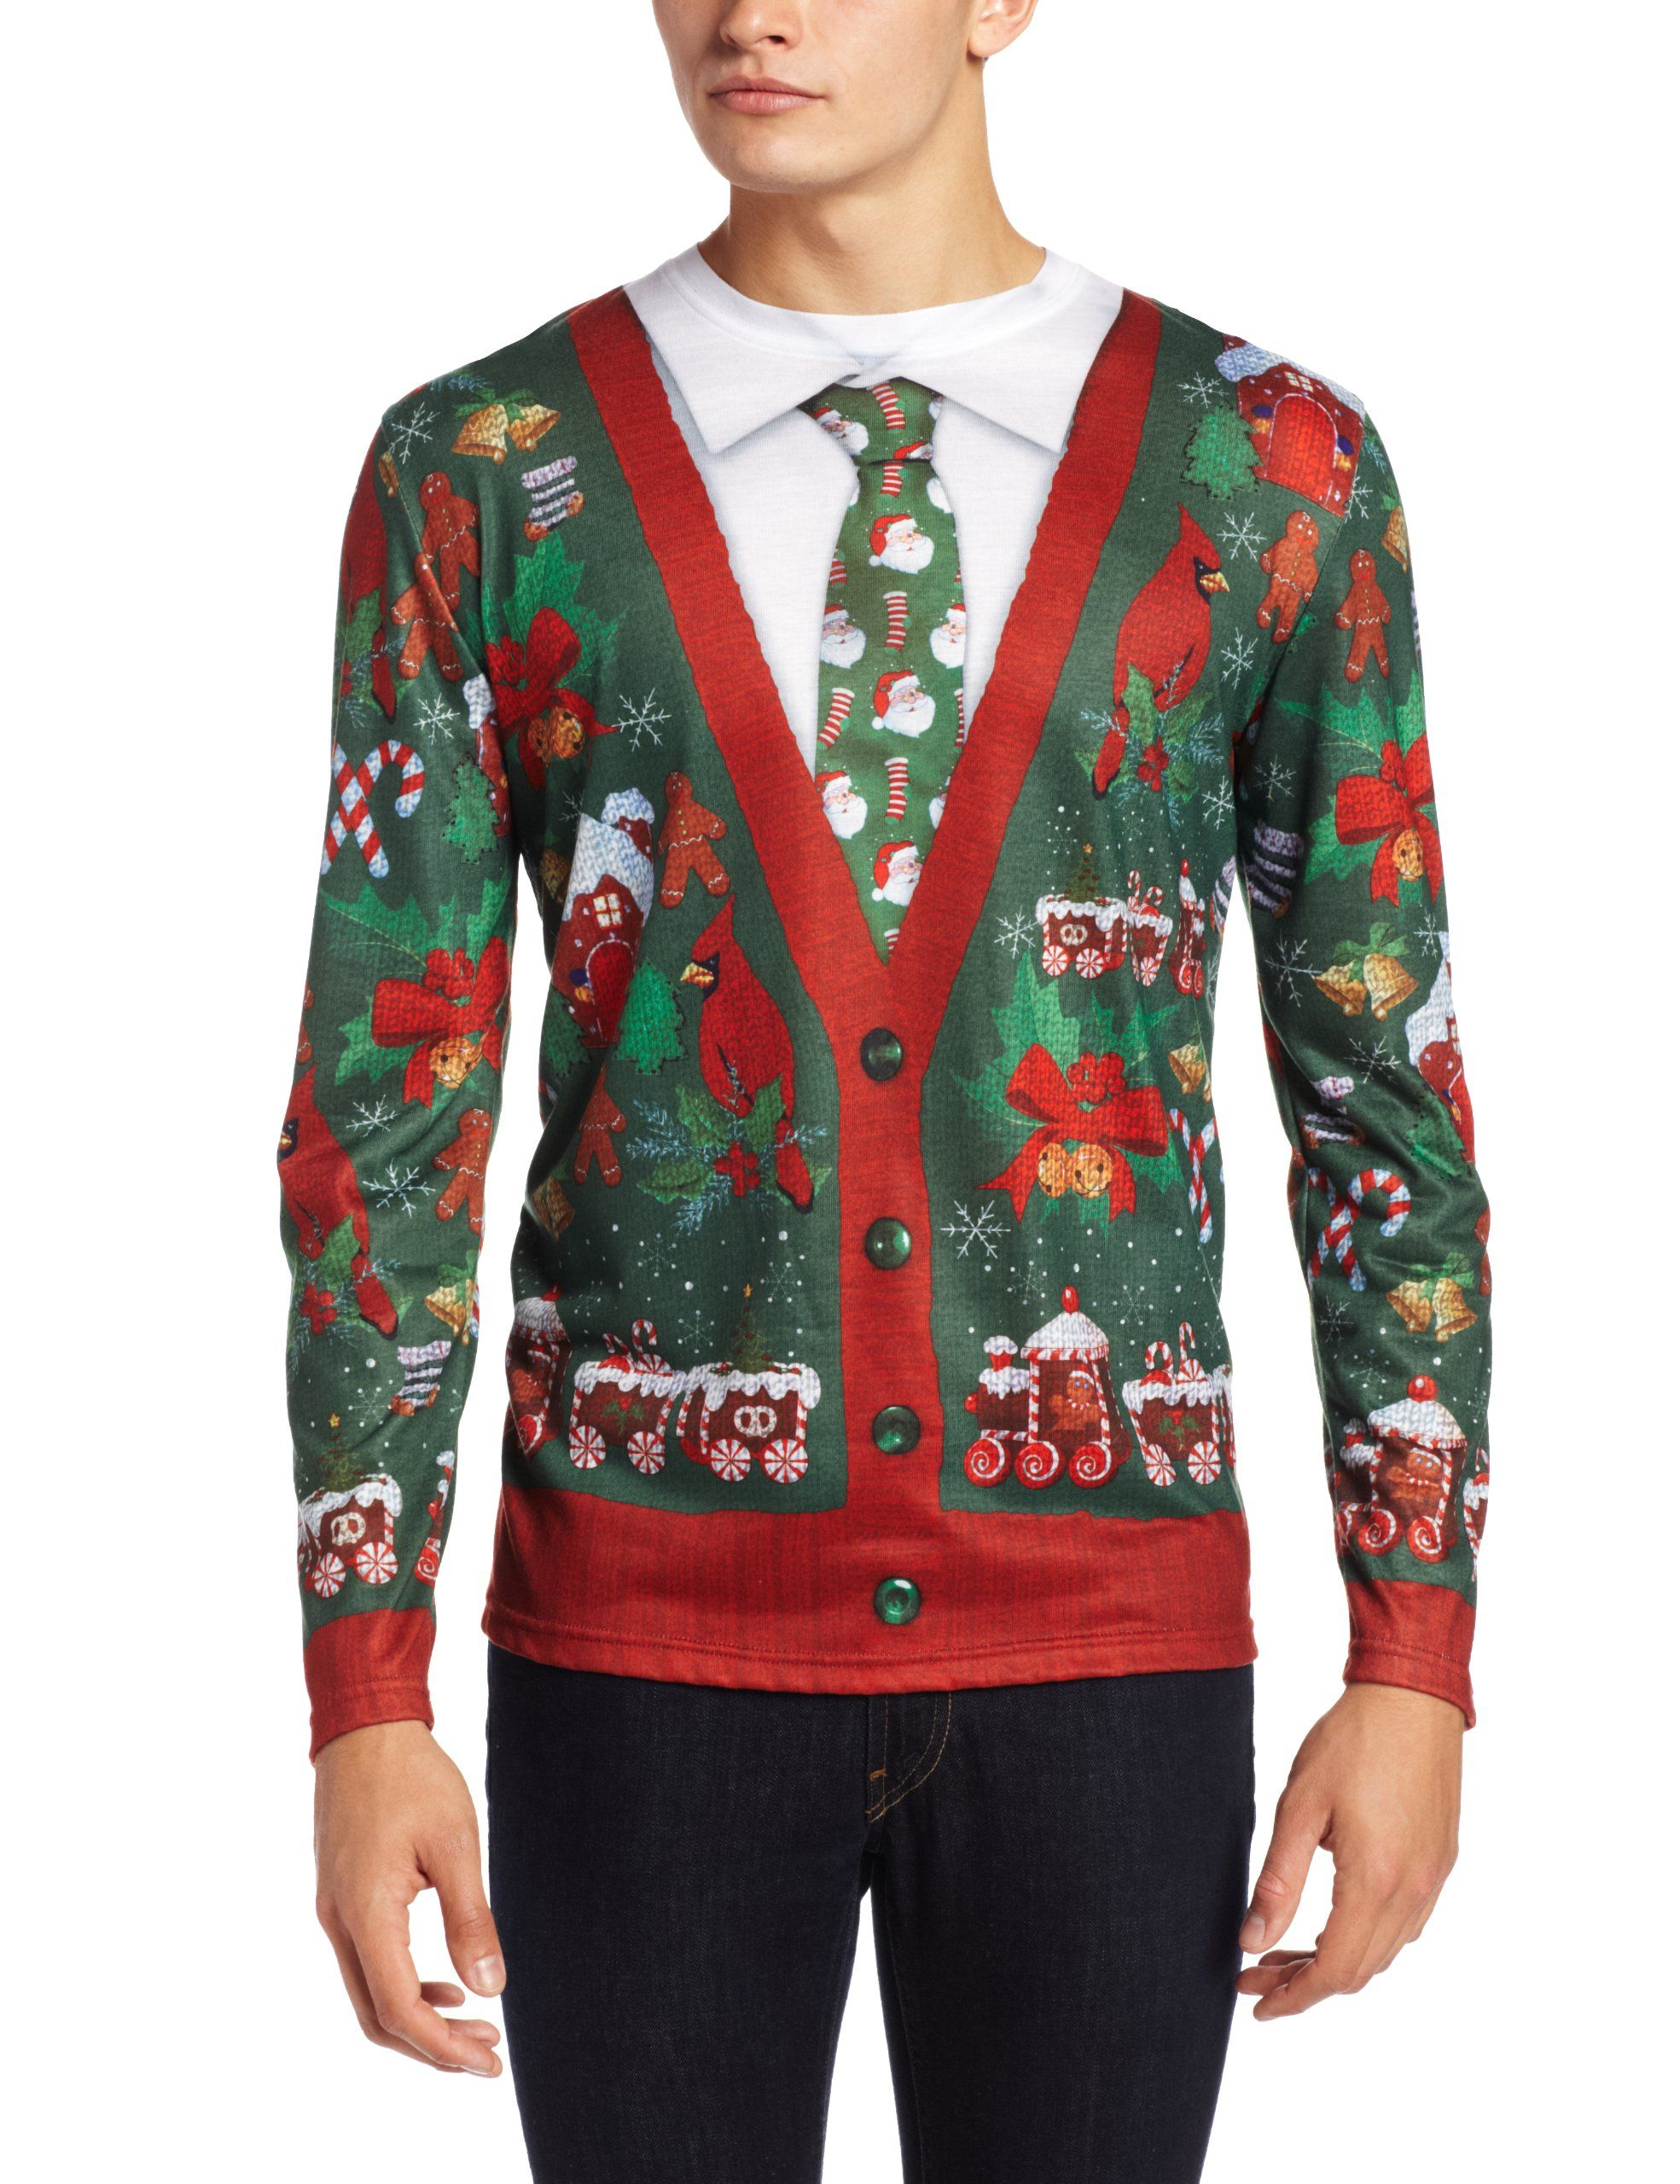 Faux Real Mens 3D Photo-Realistic Ugly Christmas Sweater Long Sleeve T-Shirt